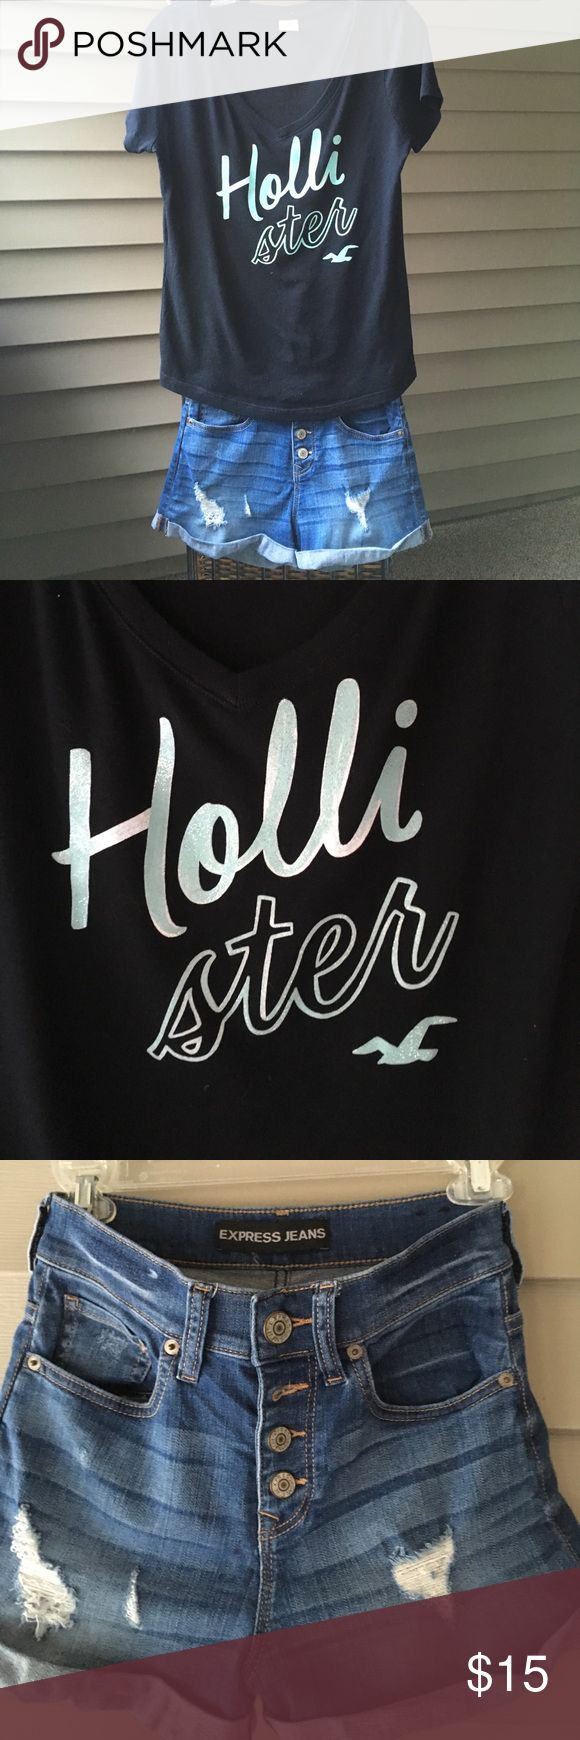 Hollister Tee & Express Jeans Button Short Shorts Hollister mint screenprint on black v Neck tee size small.                       Express Jeans size 00 Denim Short Shorts with button fly Hollister Tops Tees - Short Sleeve